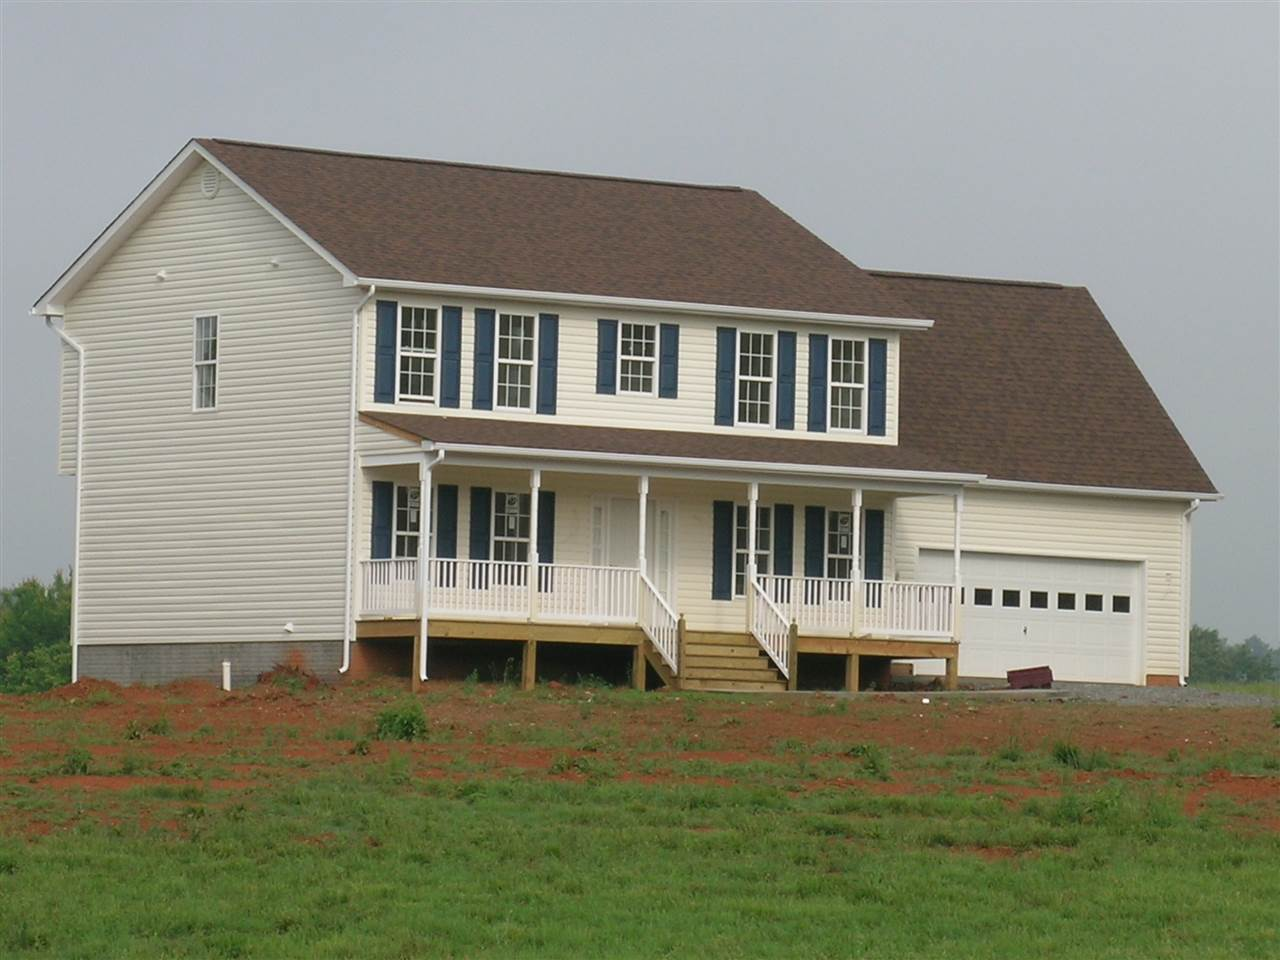 Lot 9 Kinglet Ct, Culpeper